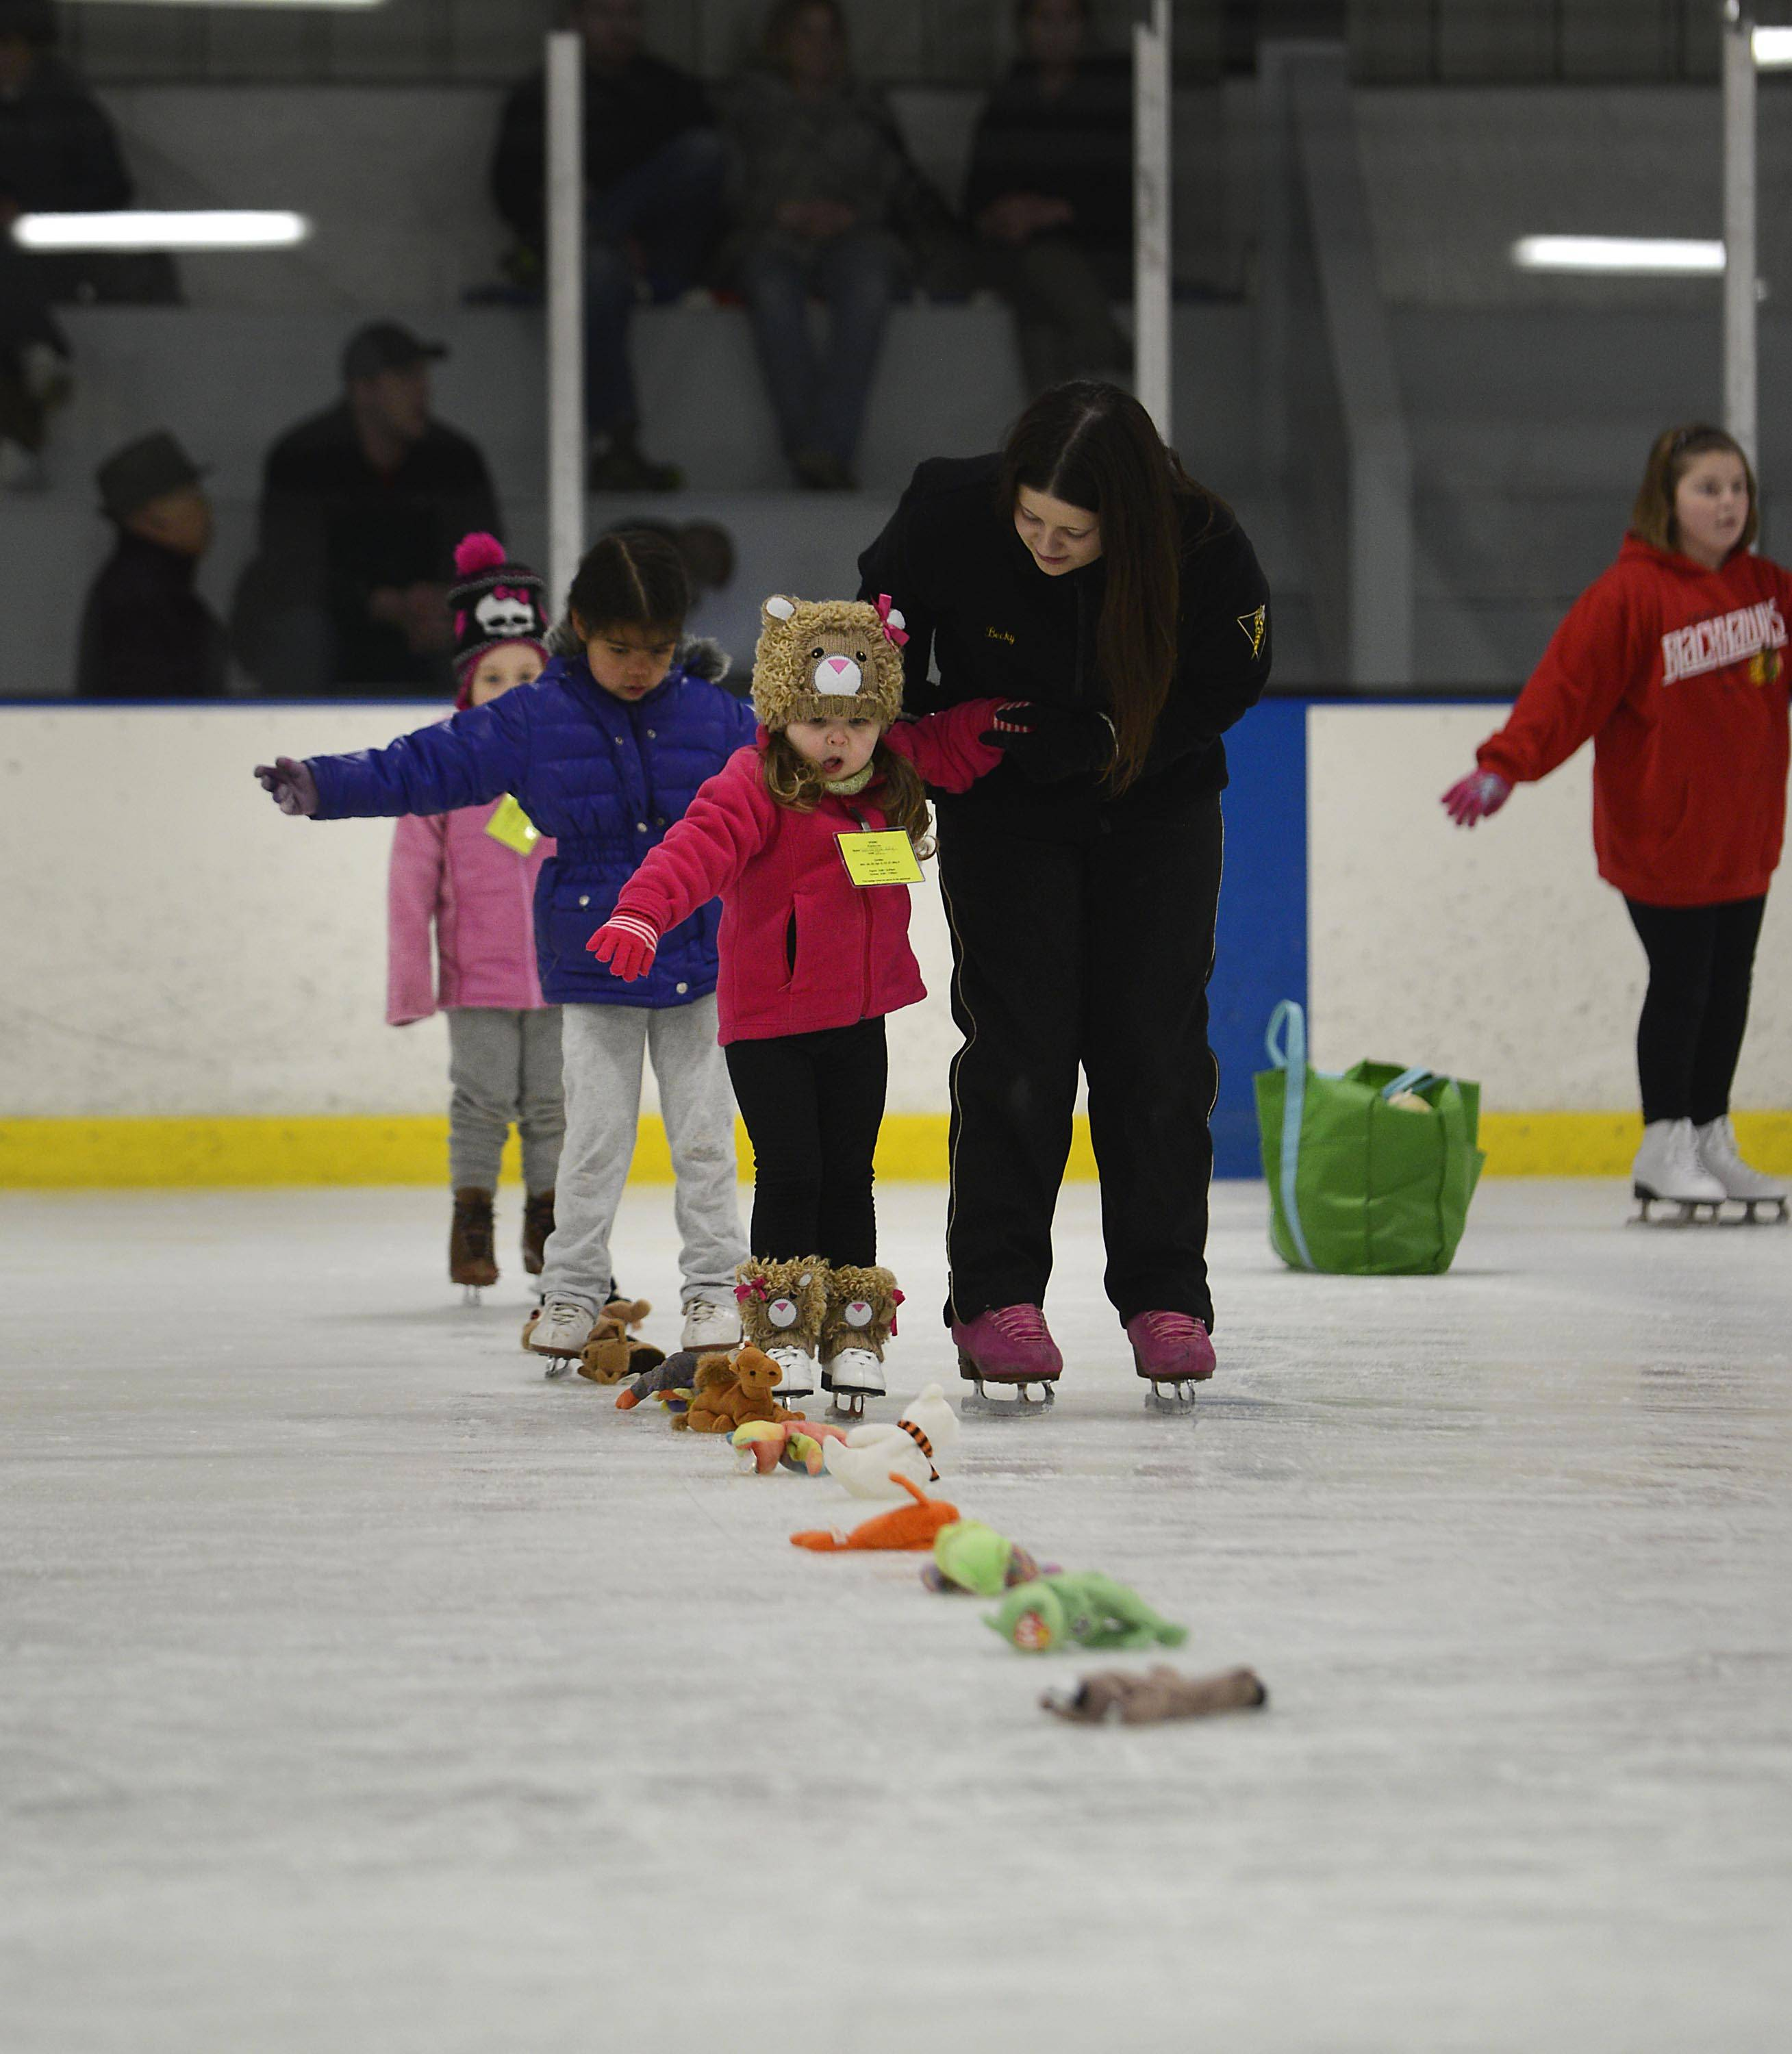 Samantha Kay of Cary takes the lead in the Snowplow Sam beginners class for 4- and 5-year-olds at the Crystal Ice House.